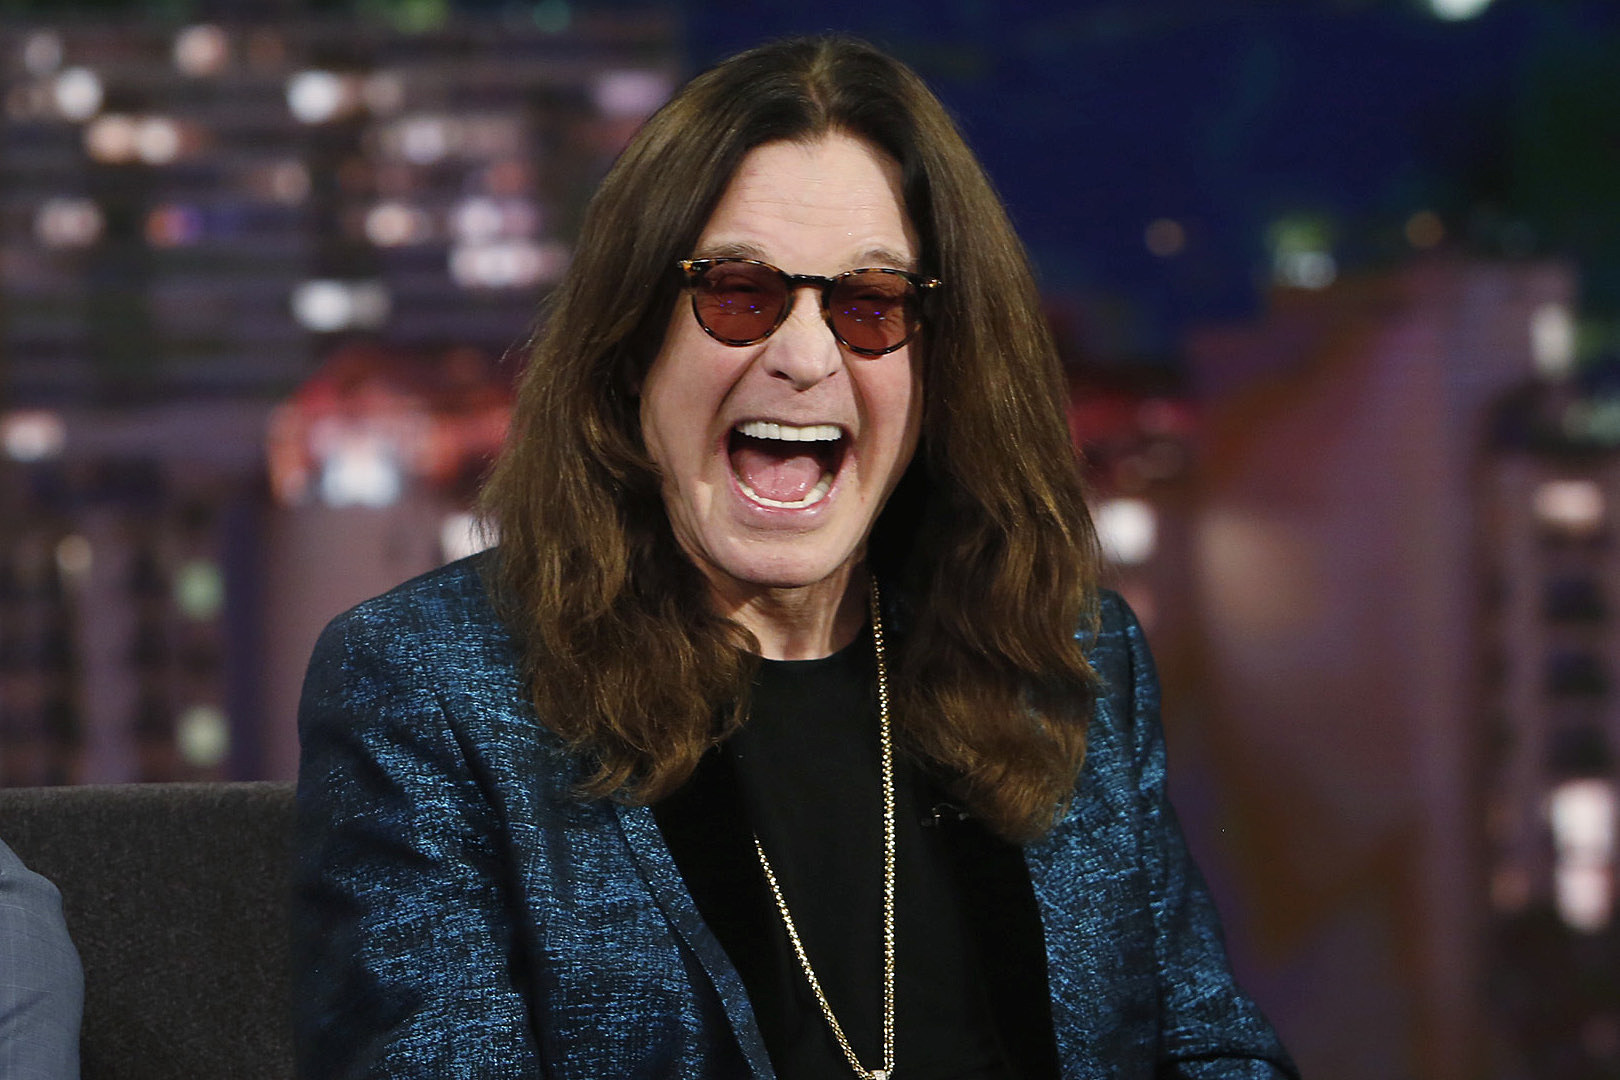 Listen to Ozzy Osbourne's New Album 'Ordinary Man' Now